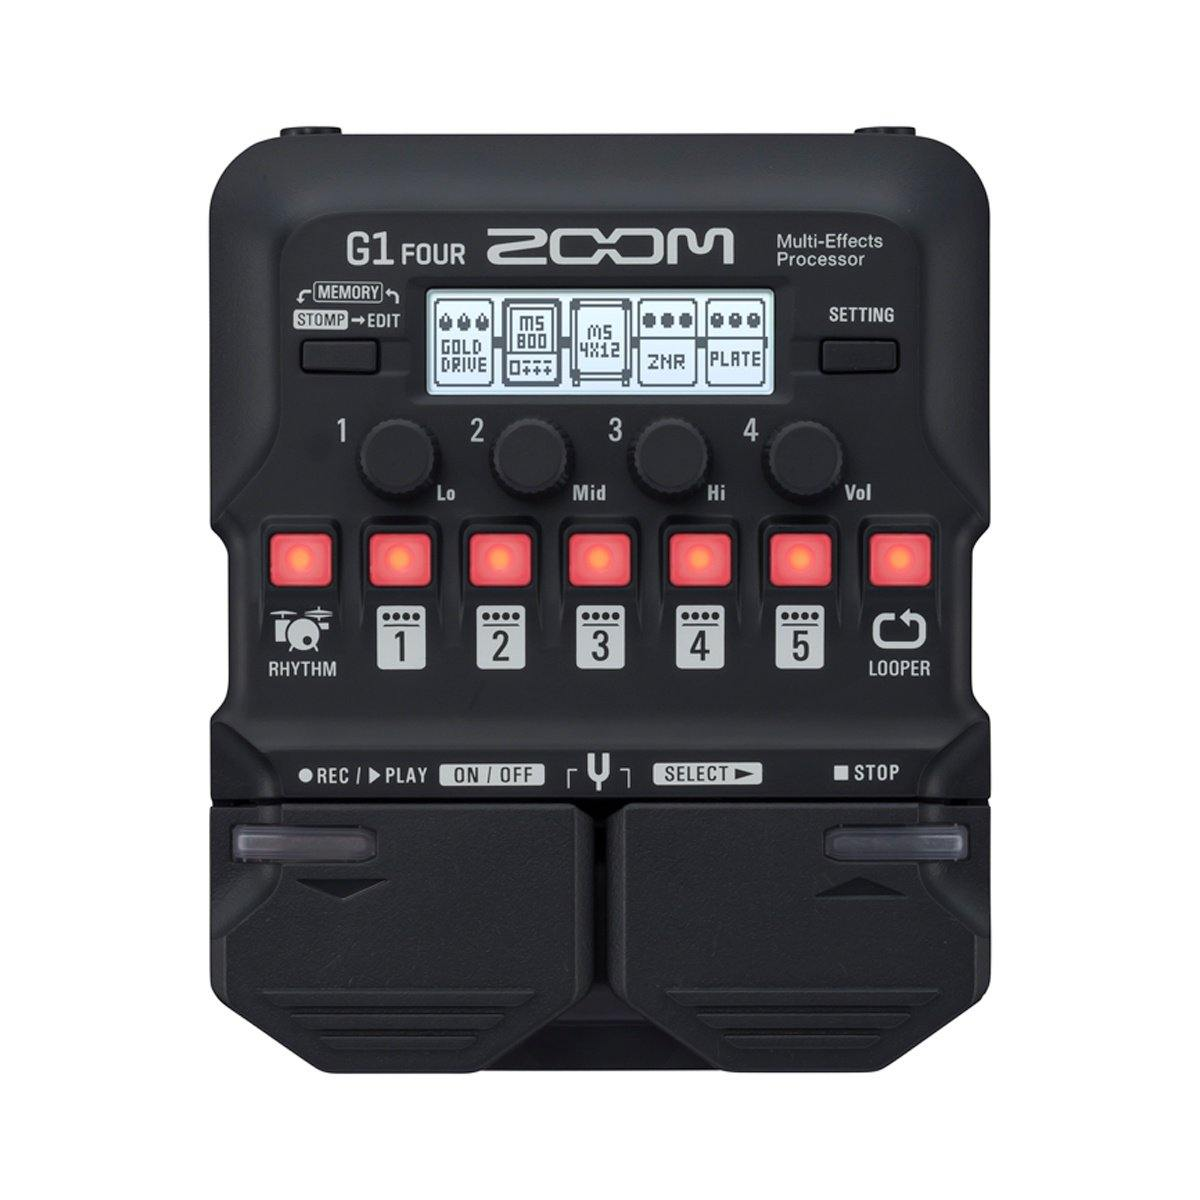 Zoom G1 Four Multi-effects Processor - ICONS Shop